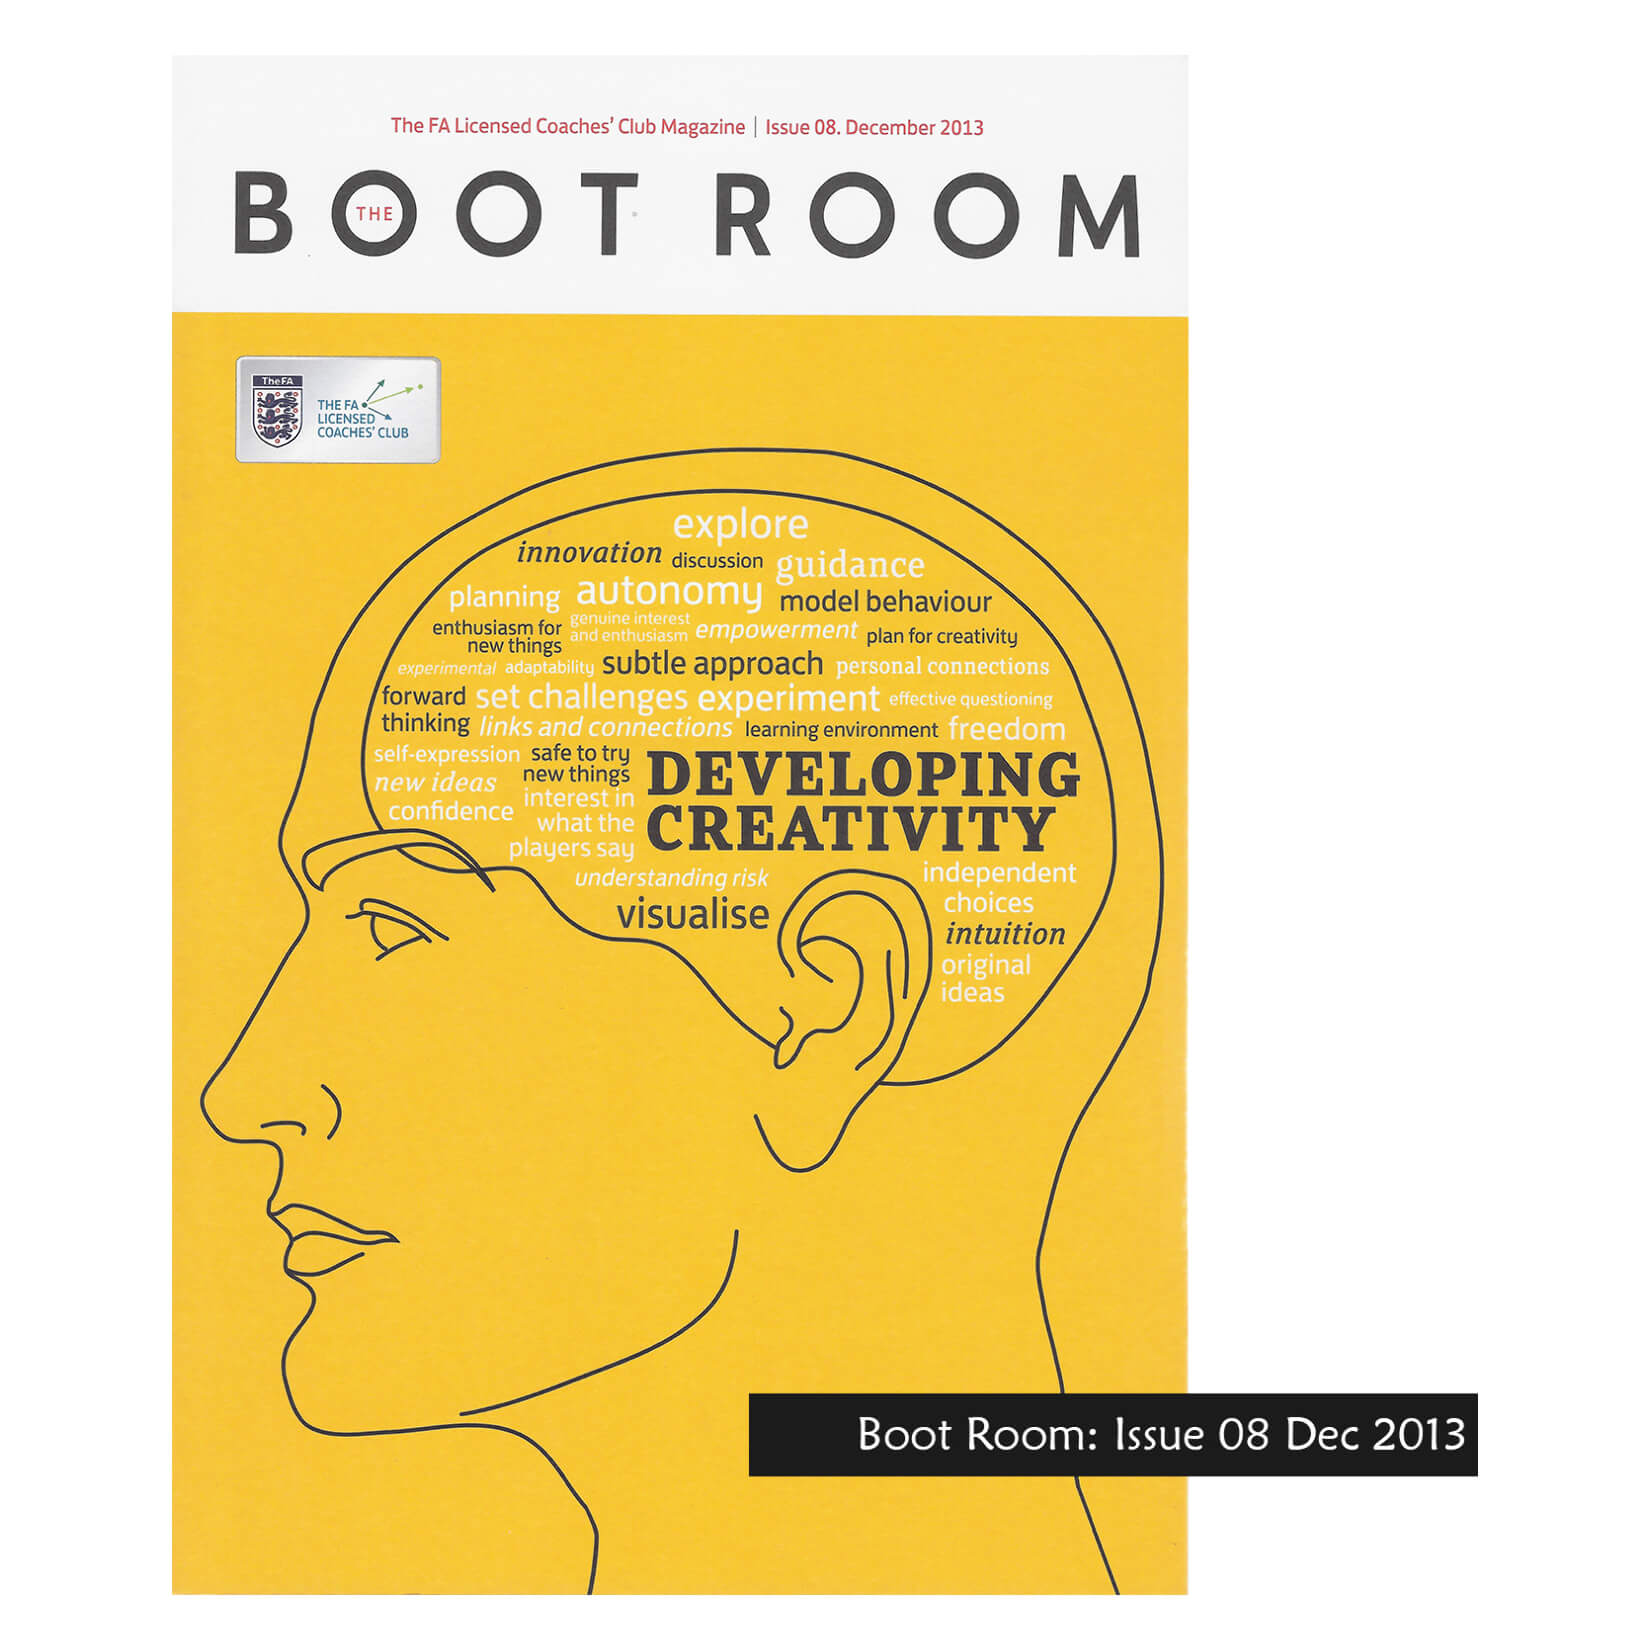 FA Boot Room Issue 08: Developing Creativity - Magazine Misc-1-2088-4435